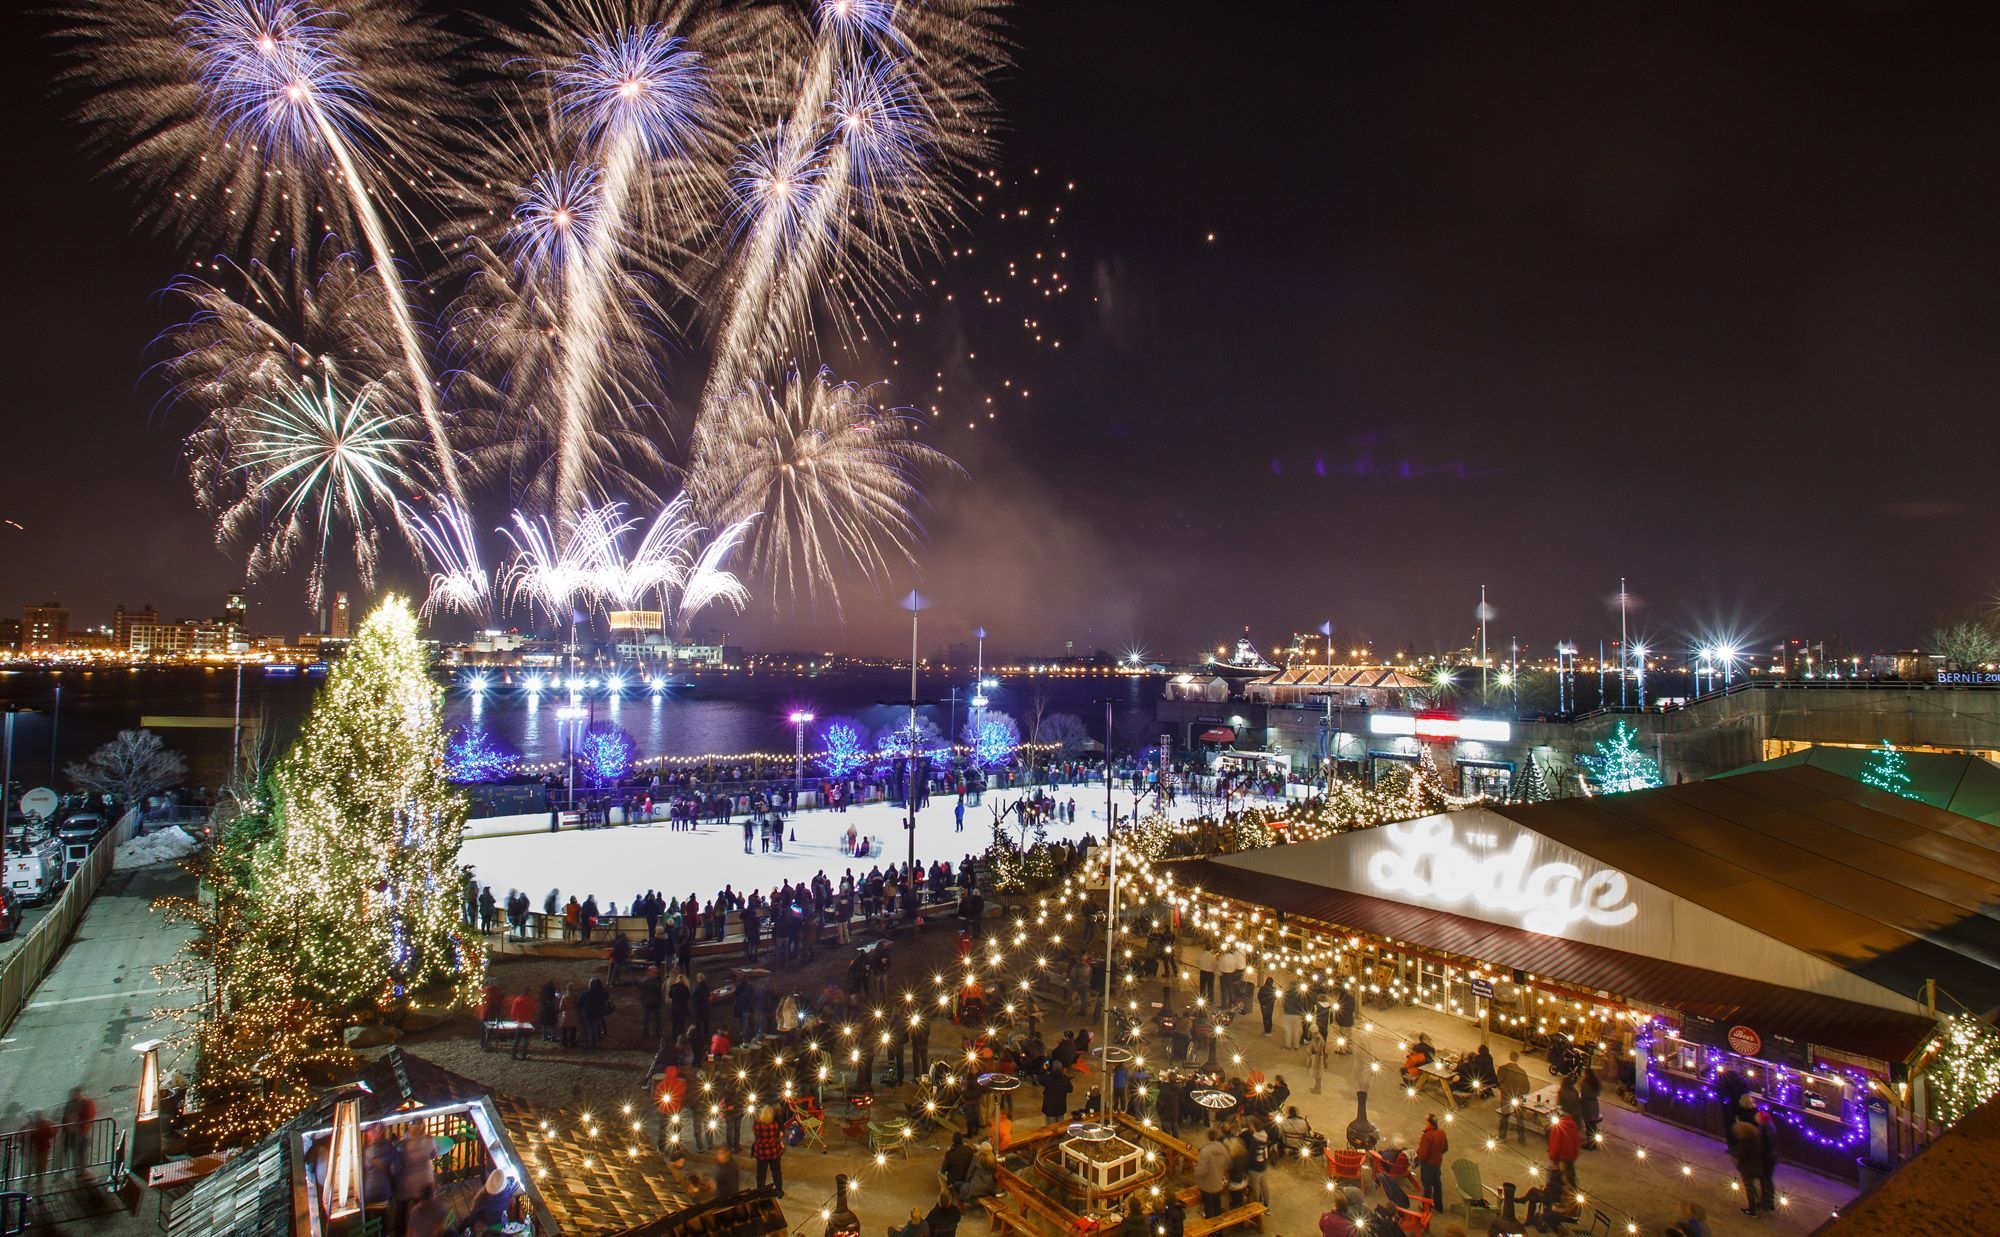 Check Out Our Favorite Places To Watch The Fireworks Top Celebrations For Revelers Of All Ages Special Winterfest New Years Eve Fireworks Visit Philadelphia